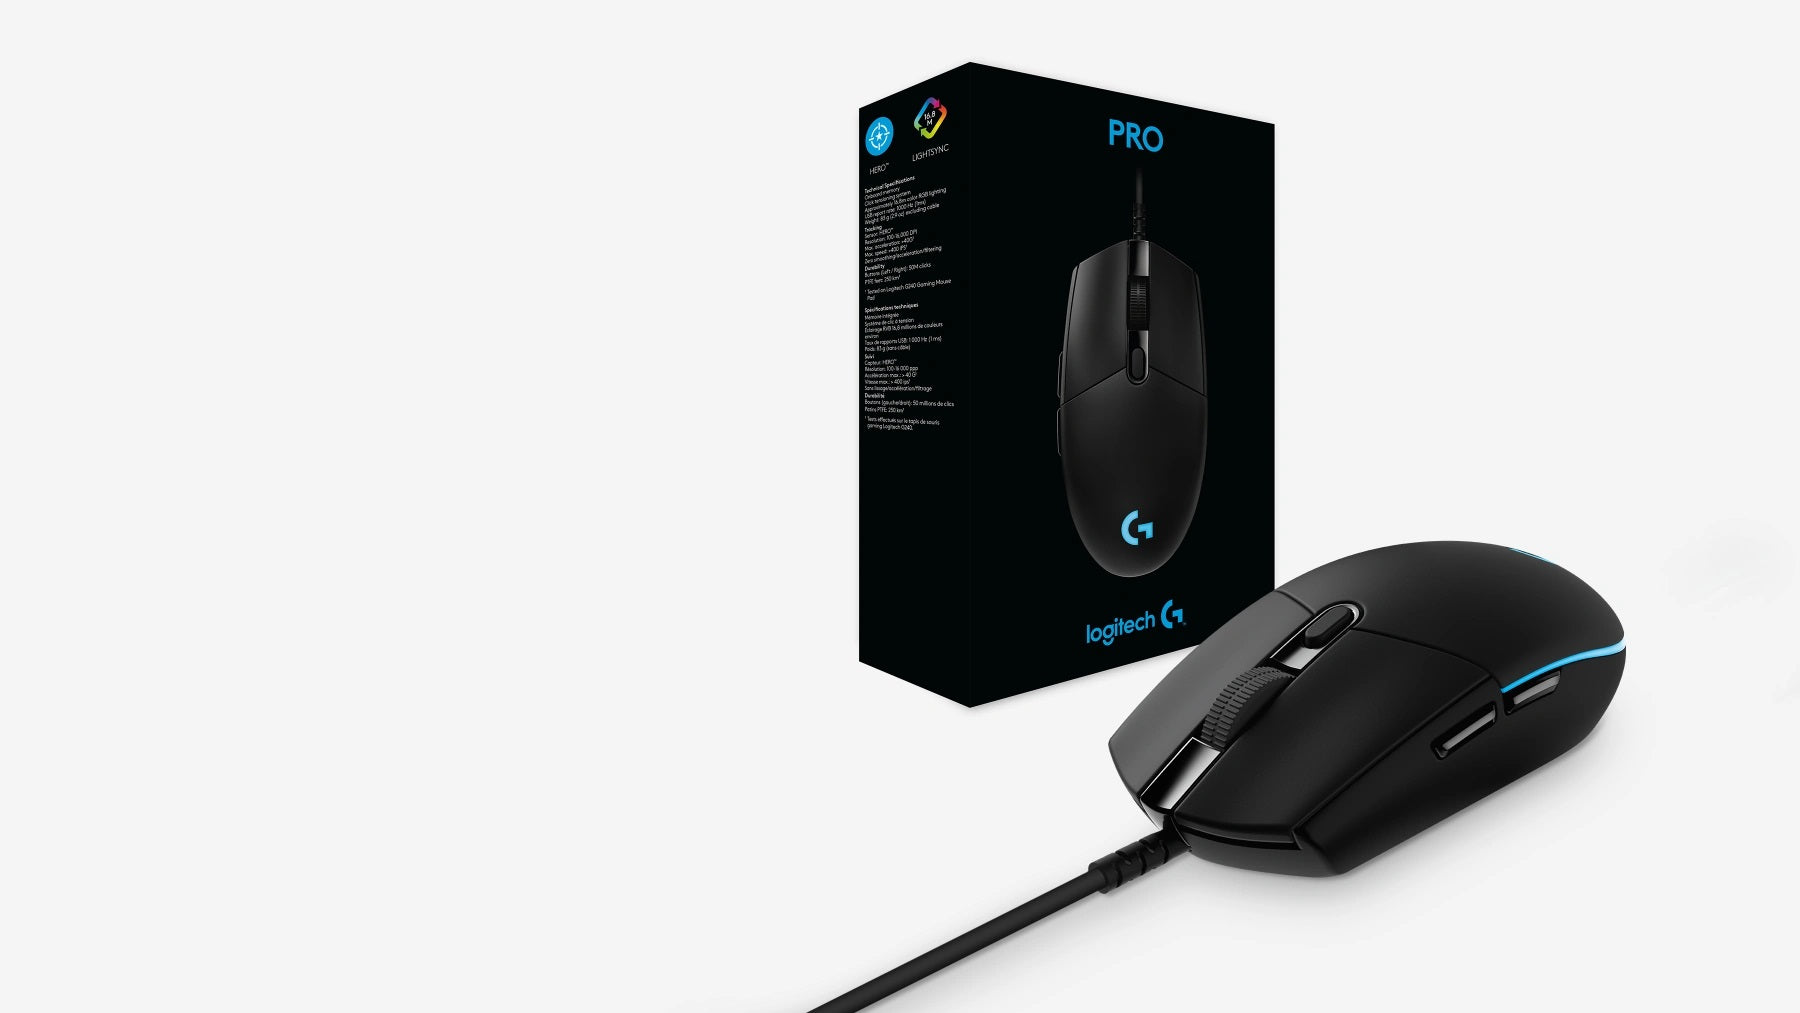 IN THE BOX PRO - gaming mouse & User documentation